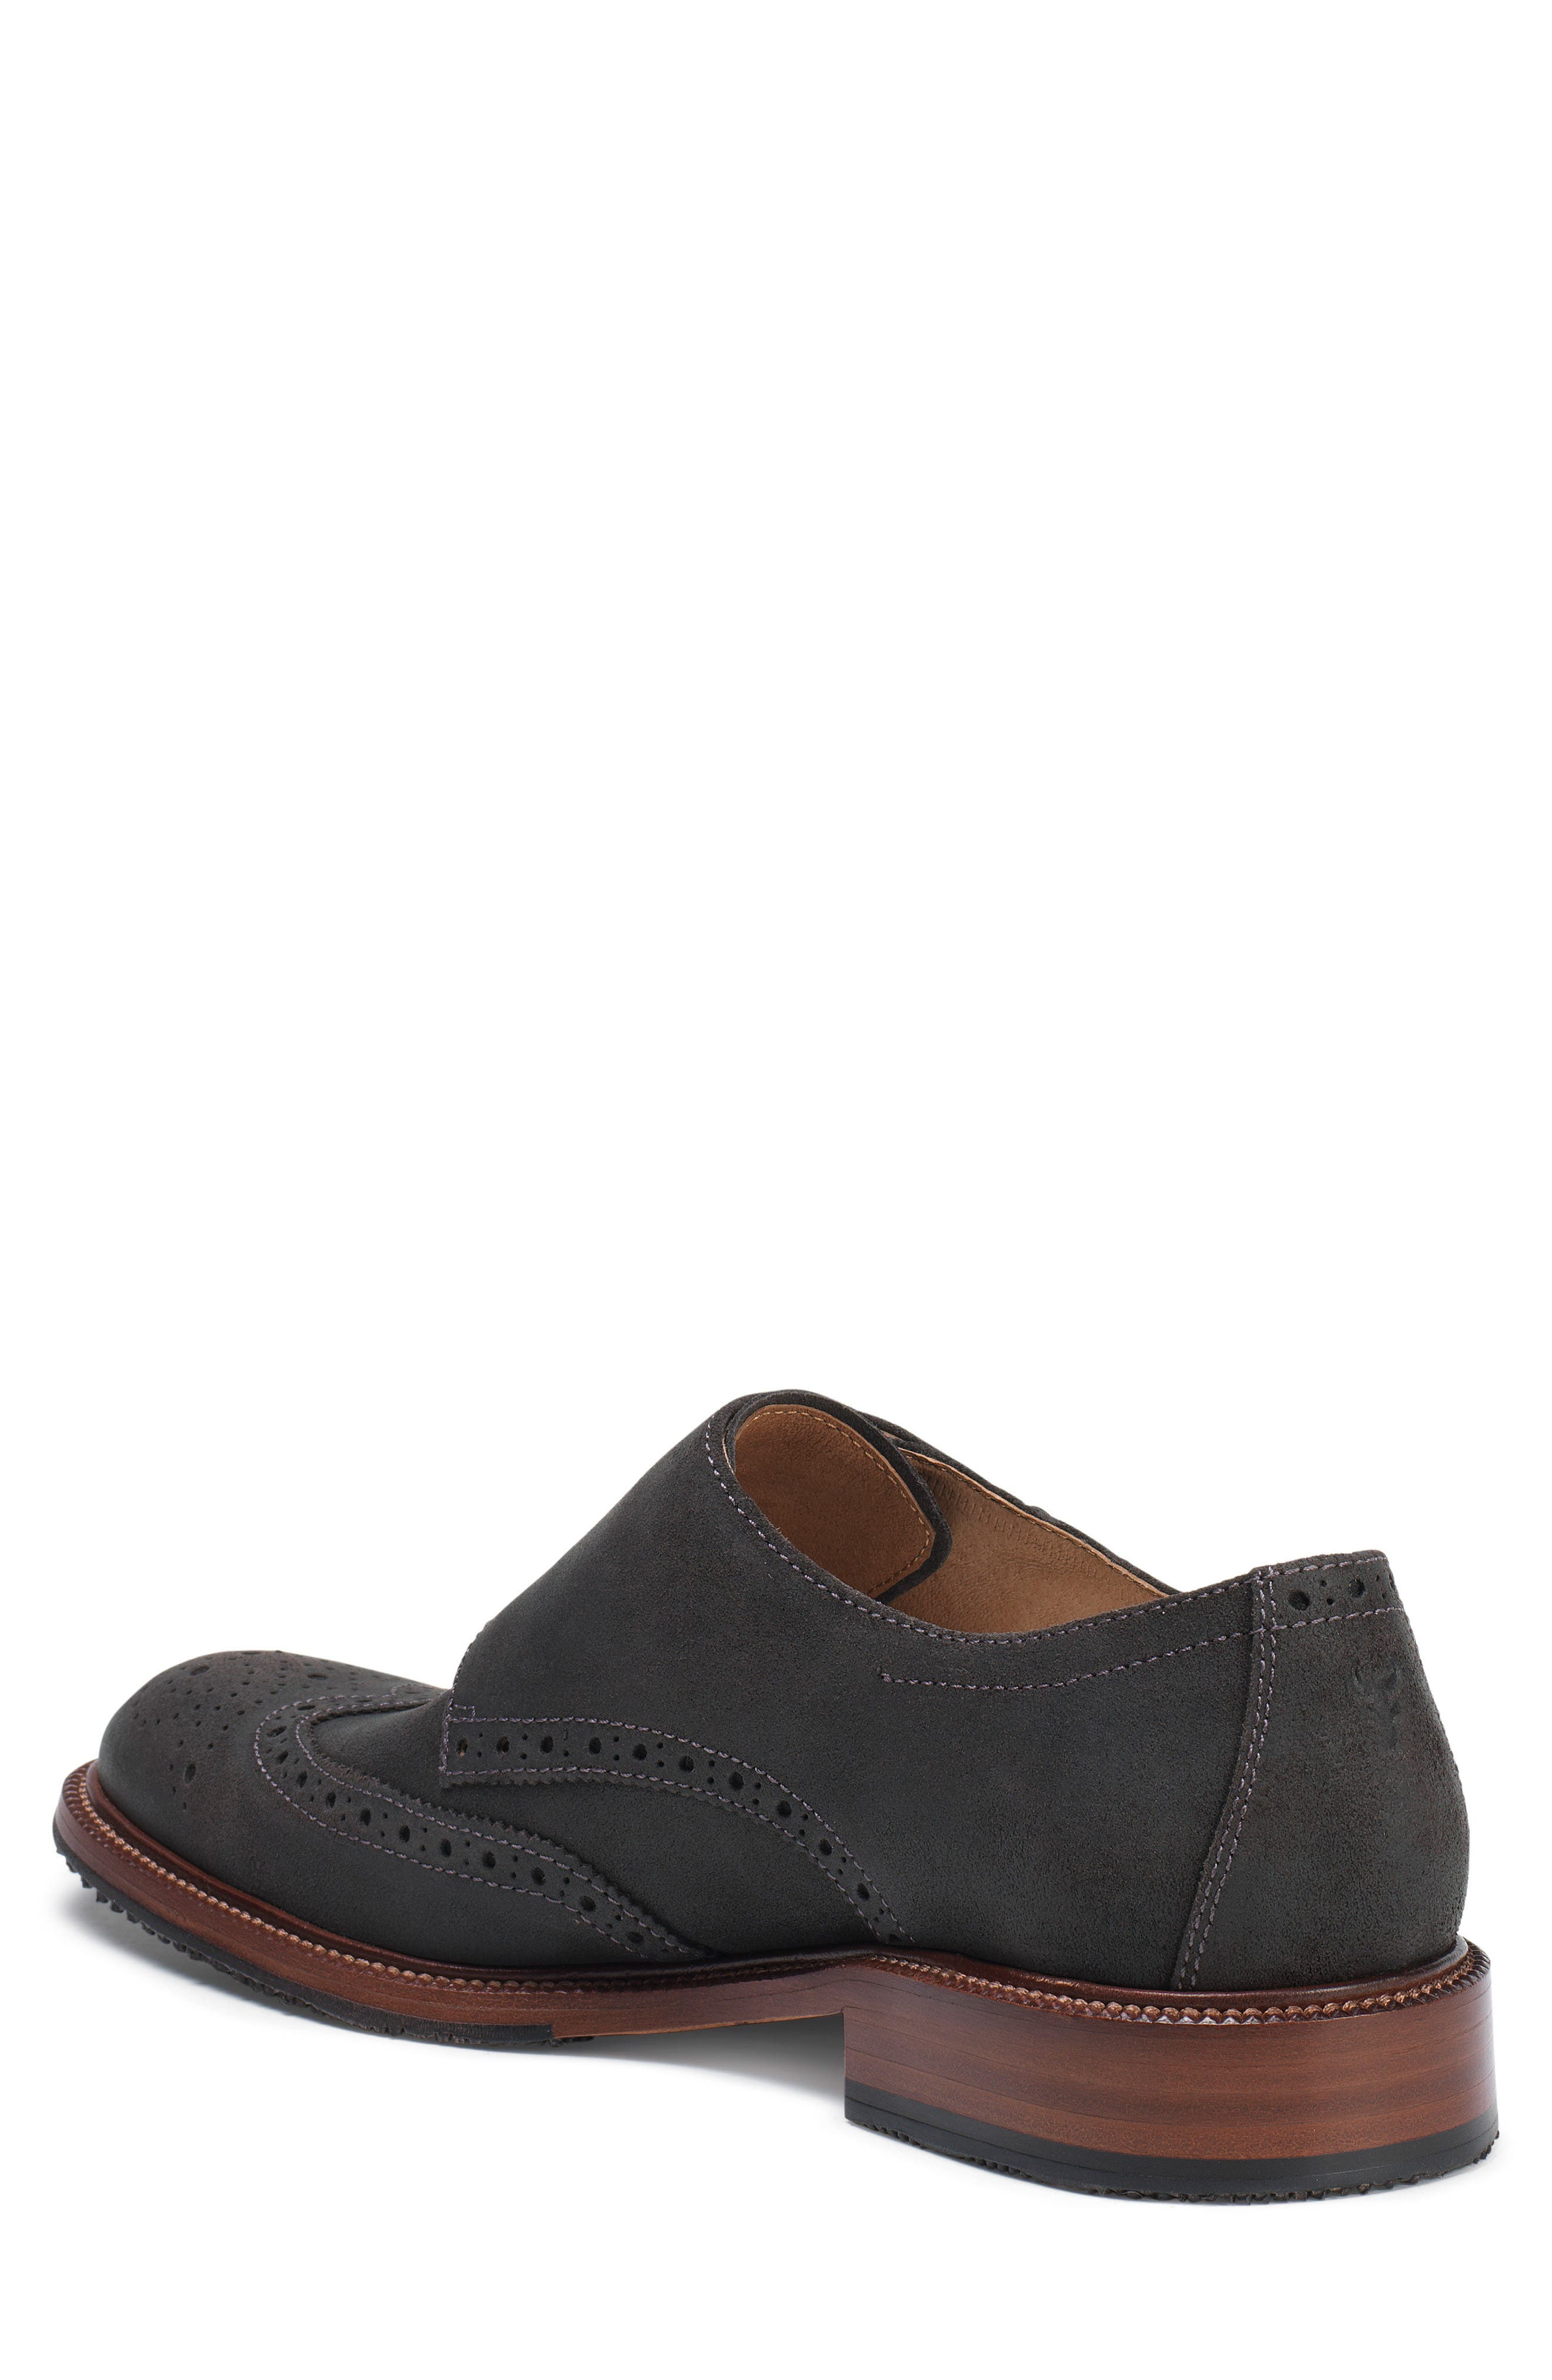 TRASK, Leland Double Monk Strap Shoe, Alternate thumbnail 2, color, GRAY WAXED SUEDE